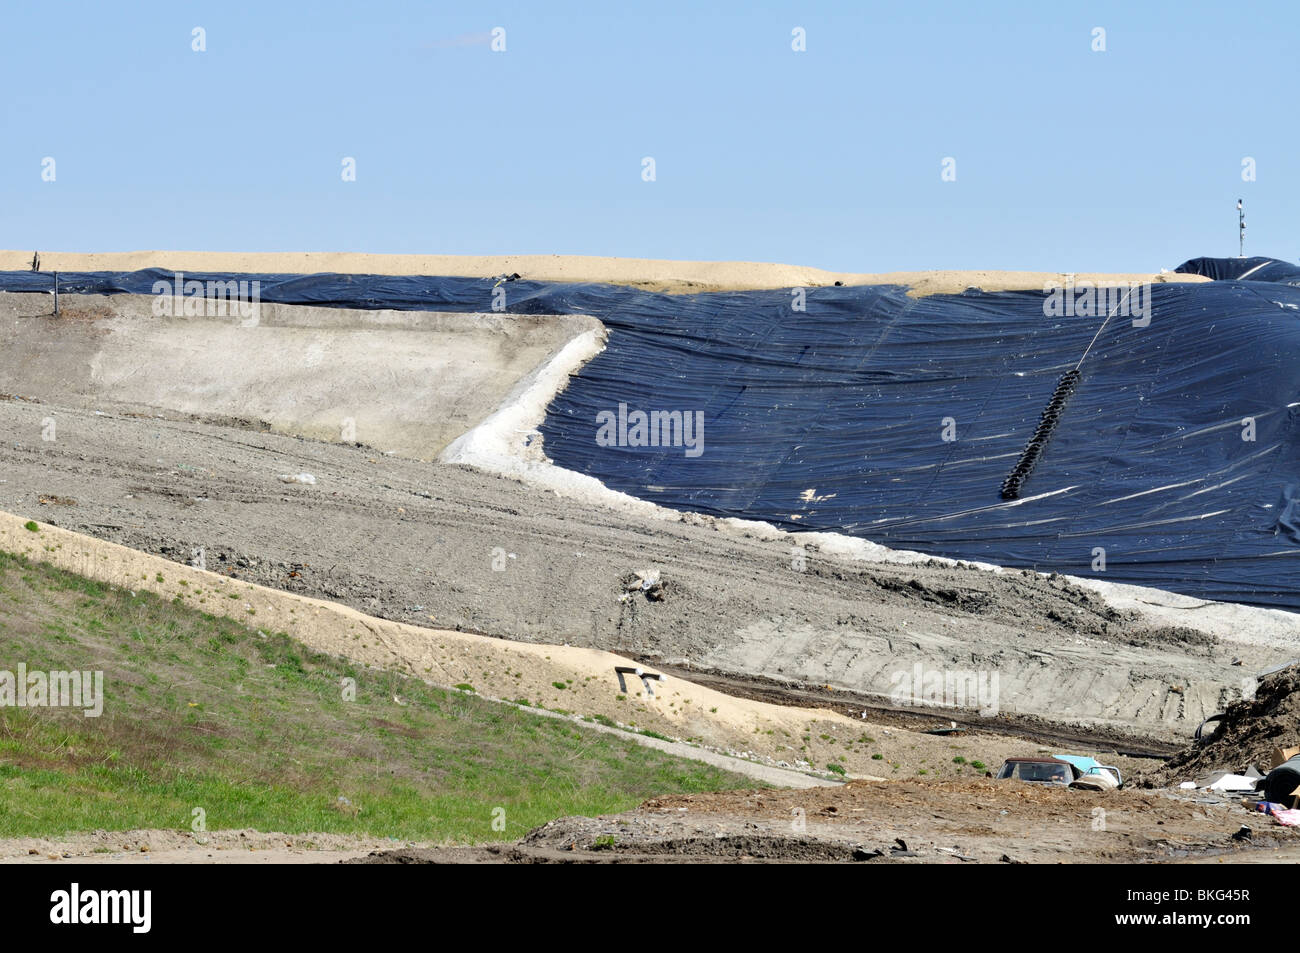 Landfill dump being capped with black plastic for reclamation in Bourne, Cape Cod, Massachusetts USA - Stock Image